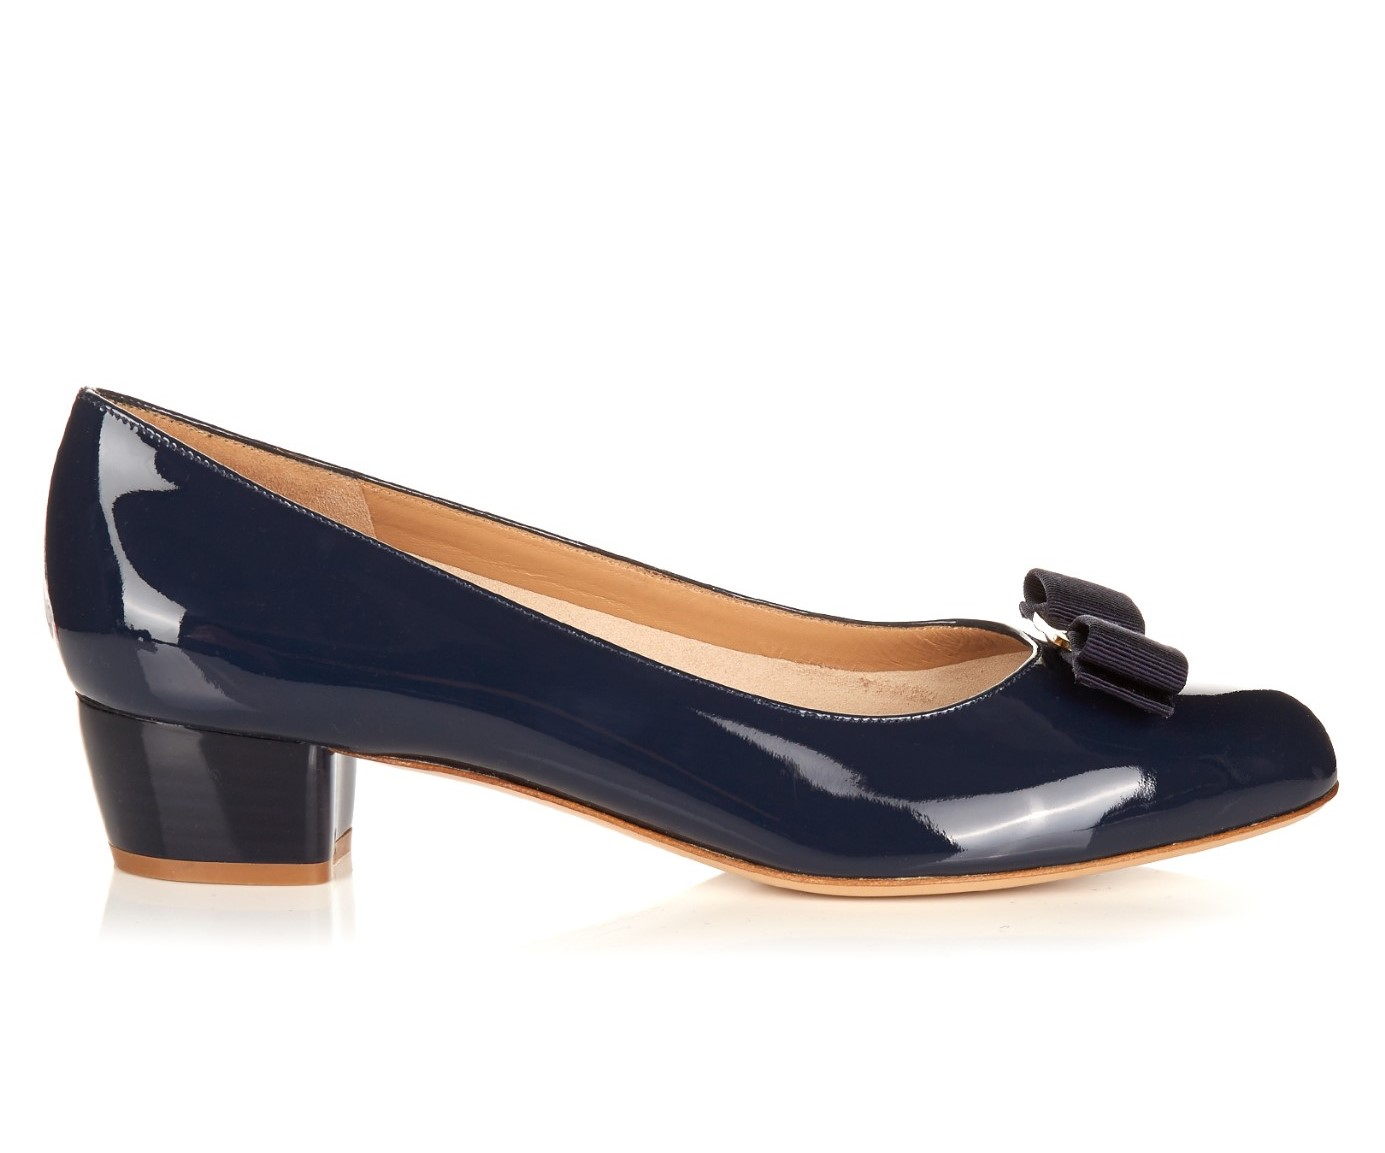 CASUAL CHIC: SALVATORE FERRAGAMO Vara C patent-leather pumps